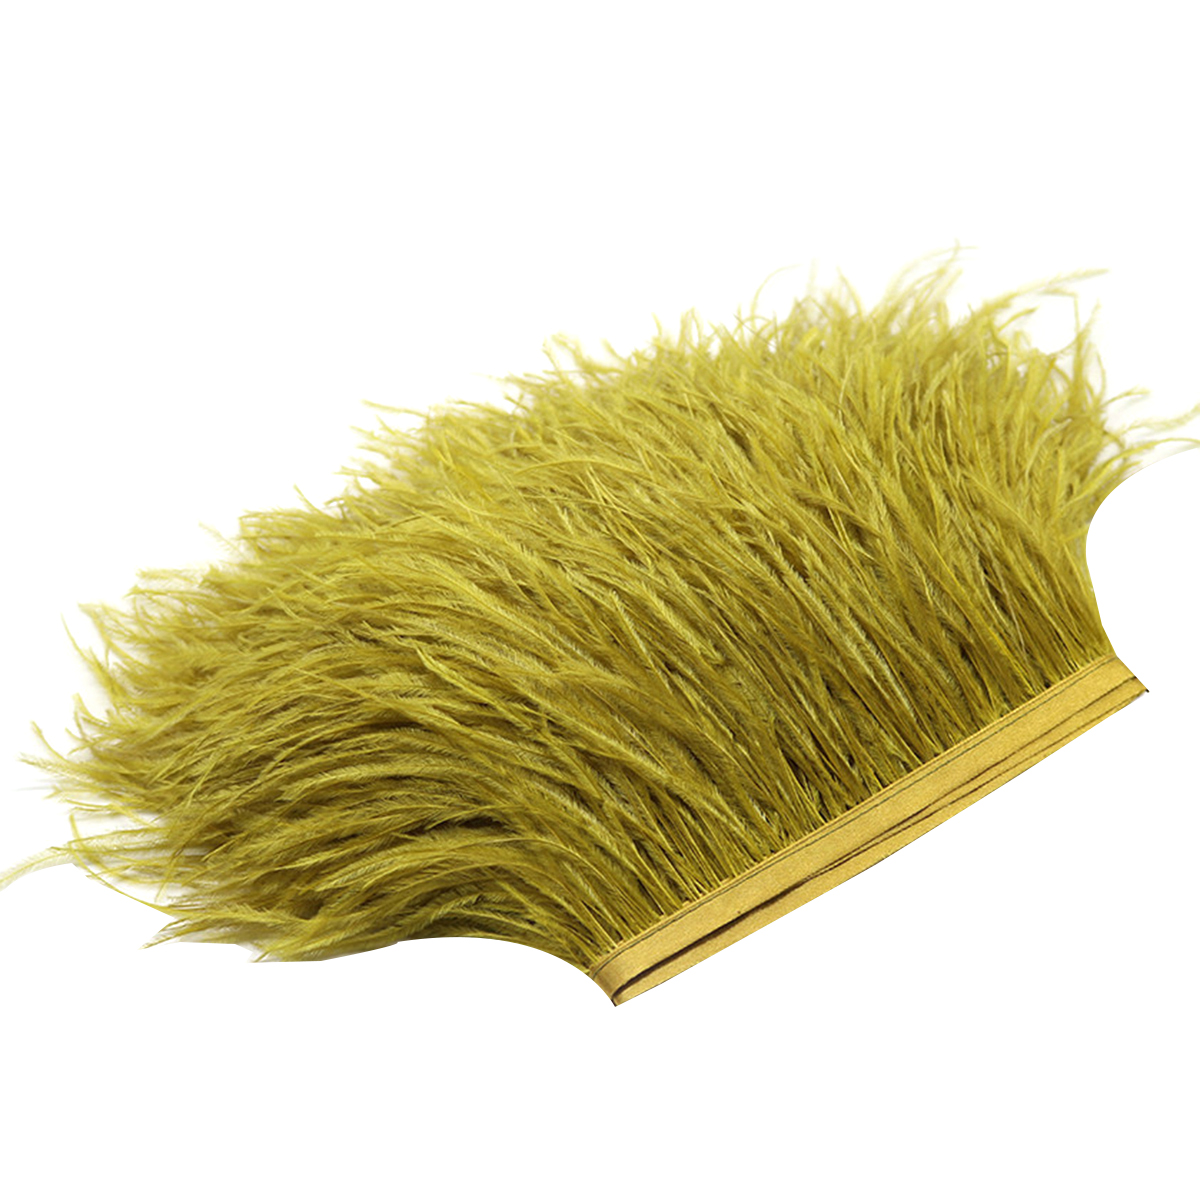 Ostrich Feathers Trims Fringe with Satin Ribbon Tape for Dress Sewing Crafts Costumes Decoration Pack of 2 Yards Green